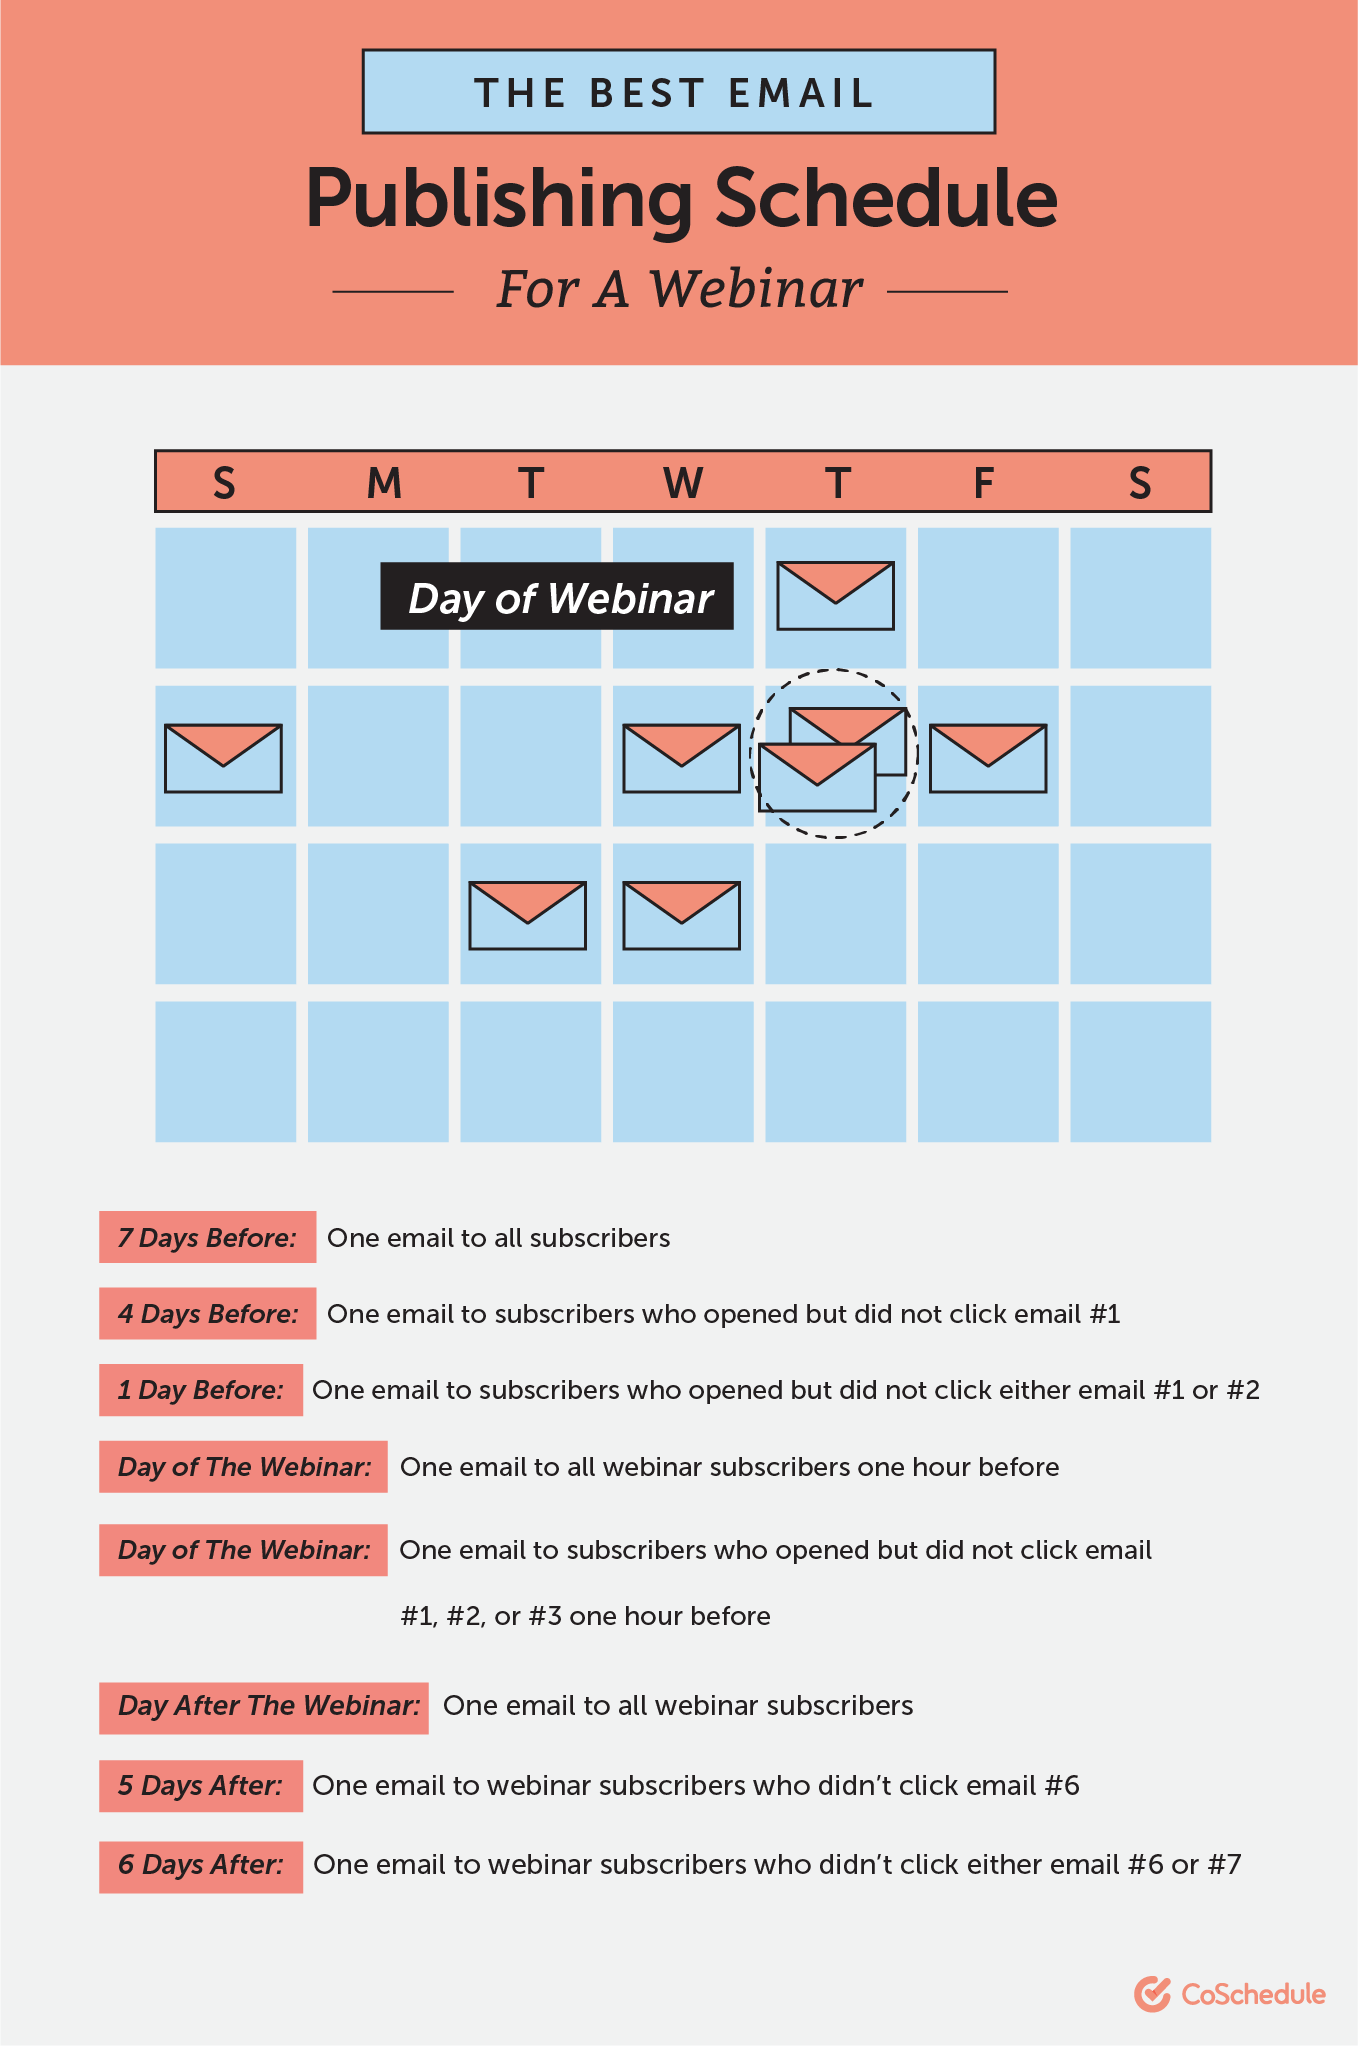 The Best Email Publishing Schedule for a Webinar